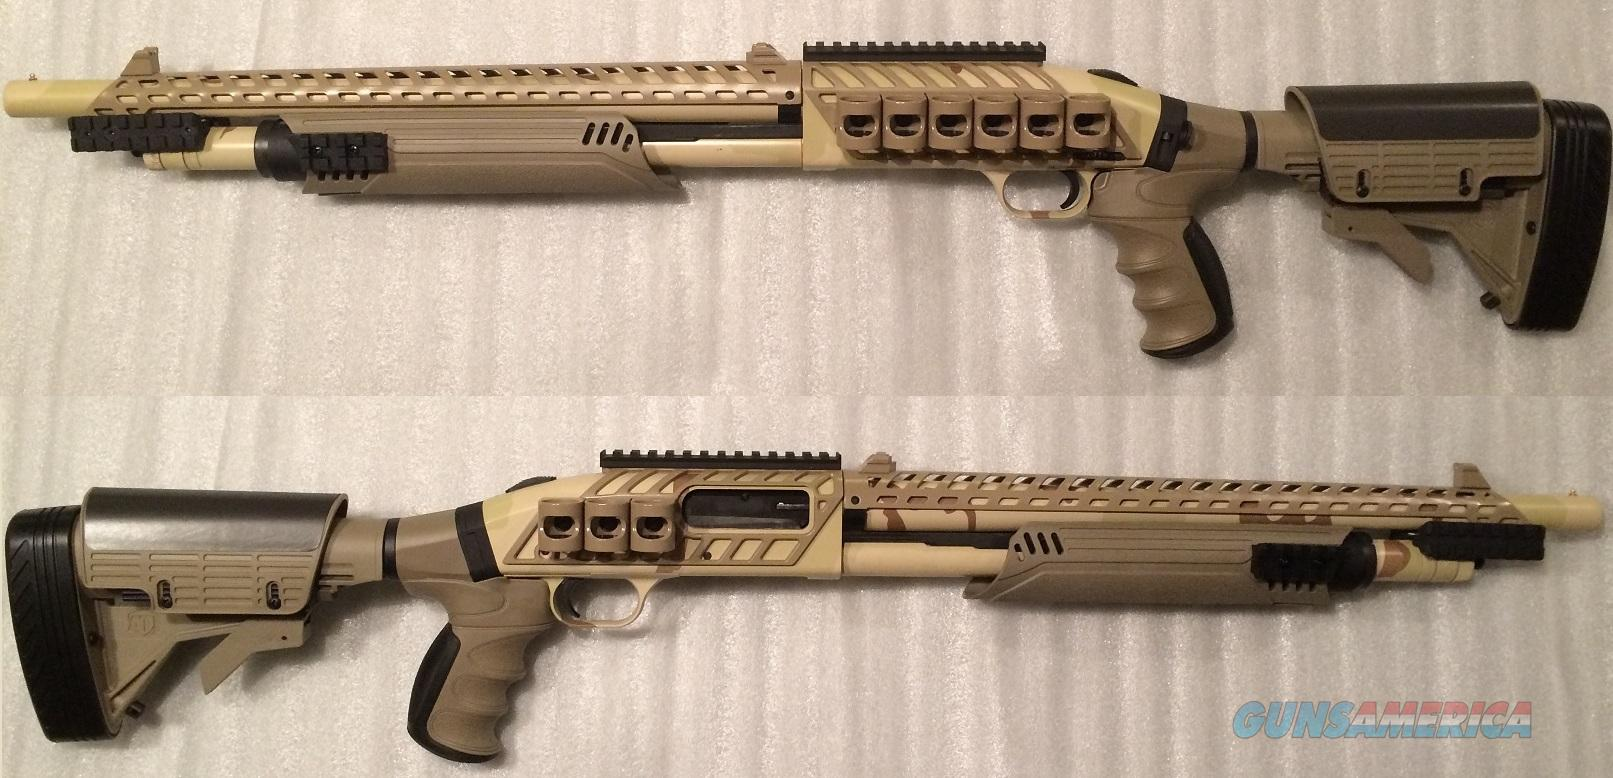 Ultimate DESERT CAMO / FDE 12 Ga Shotgun - Dese... for sale